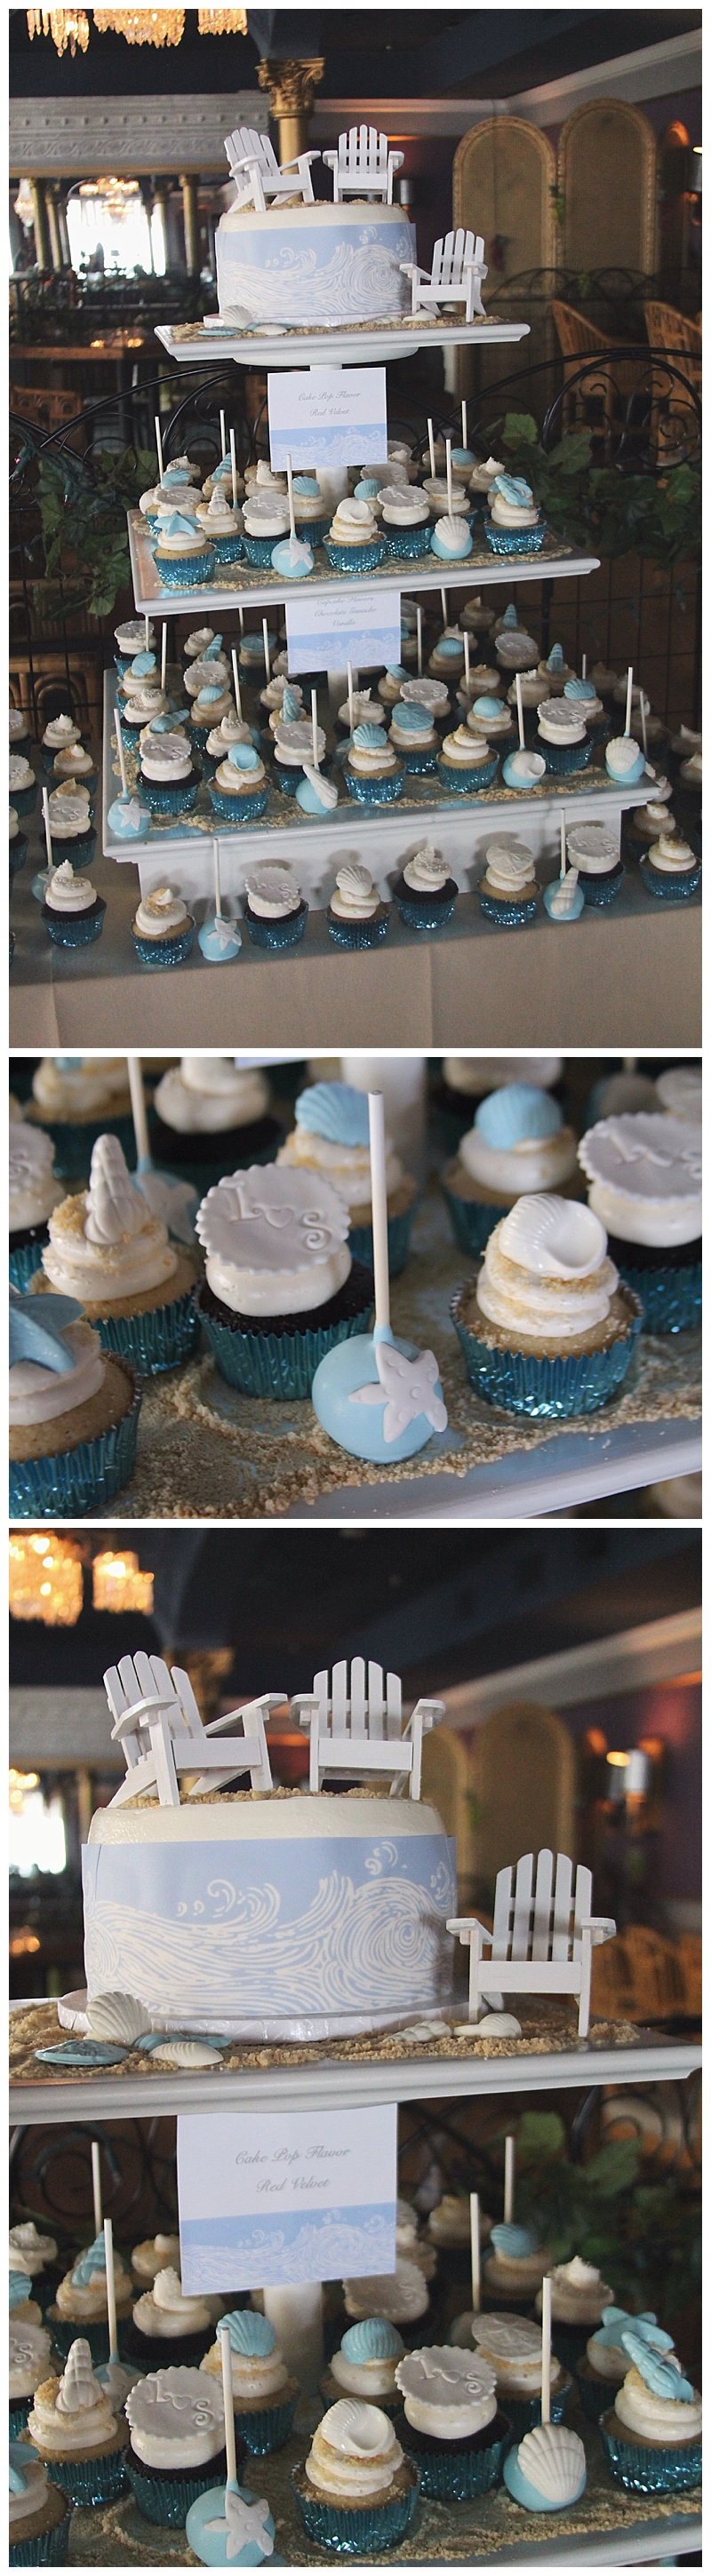 yummy sweet shop // ocean city ocean pines cupcake wedding cake